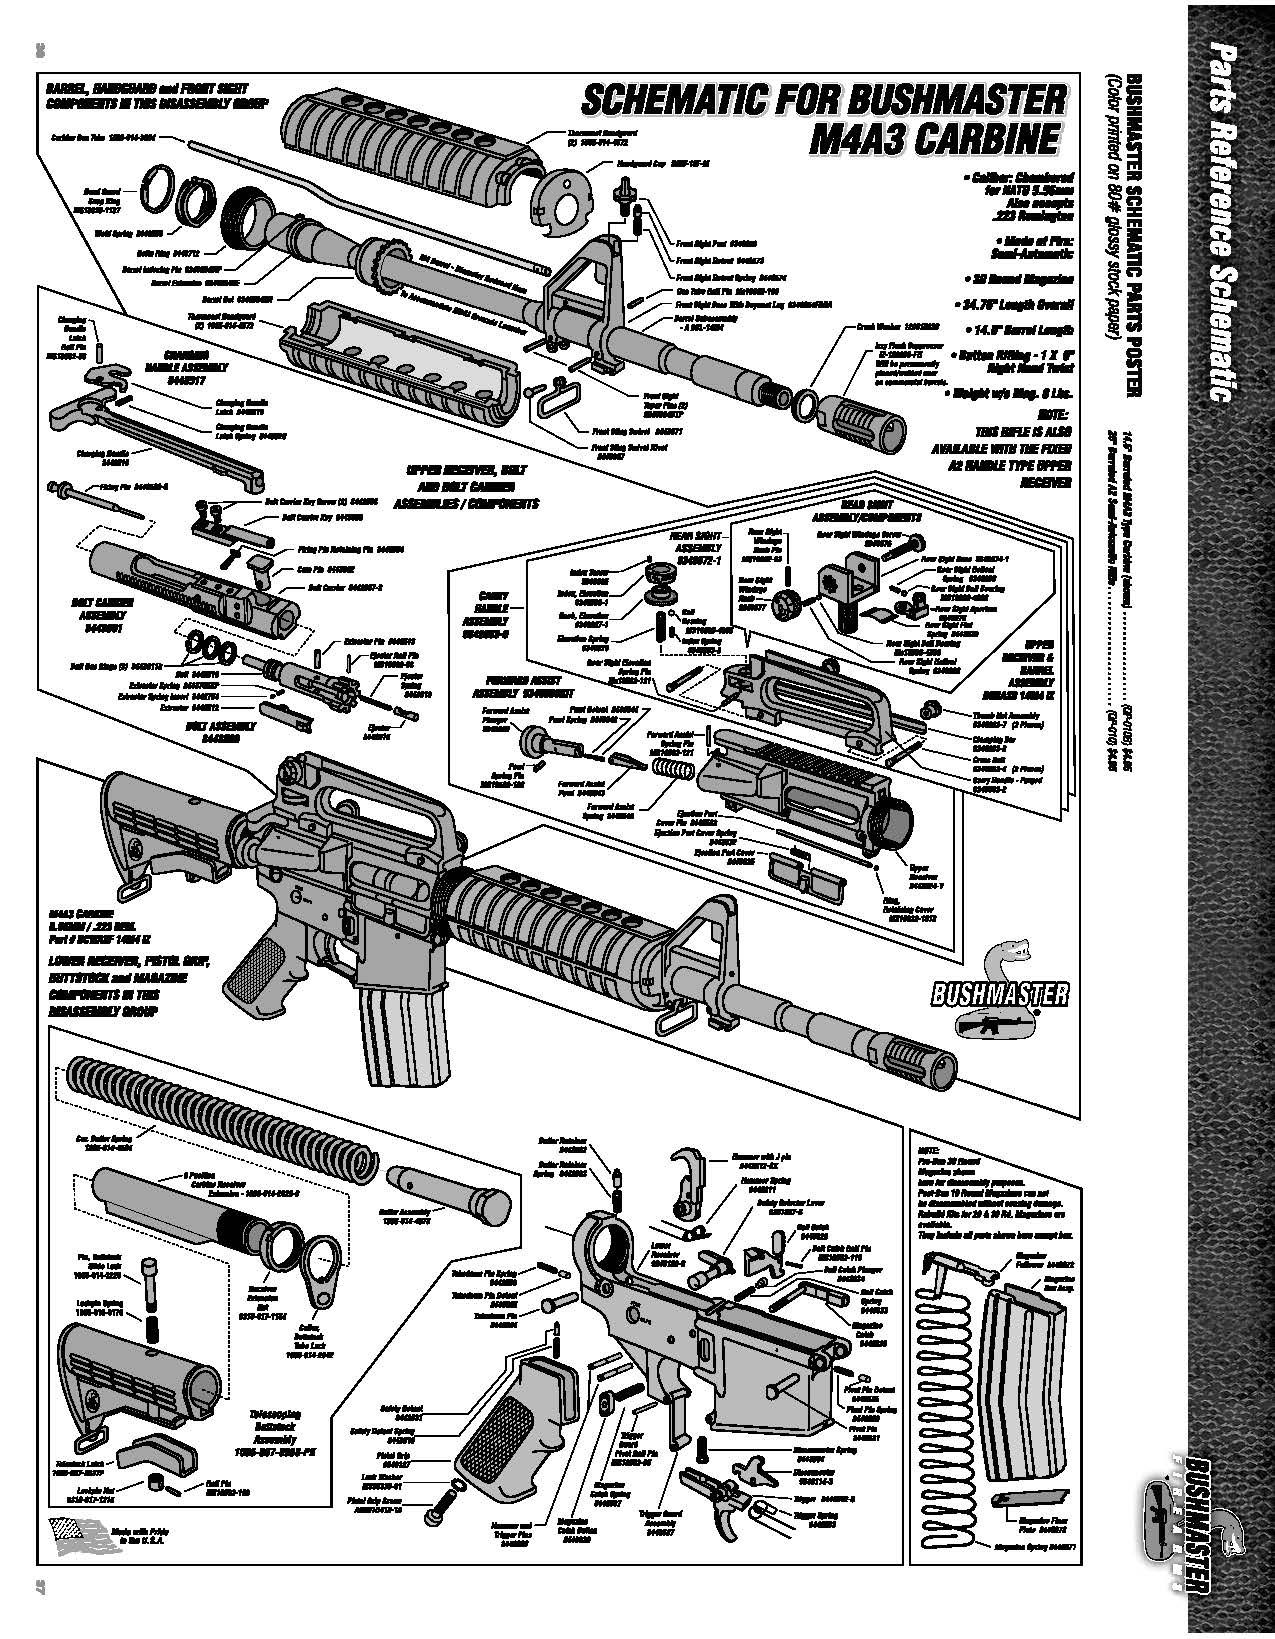 AR-15 Parts Schematic (Bushmaster) (pg 36) | Guns | Pinterest | Guns